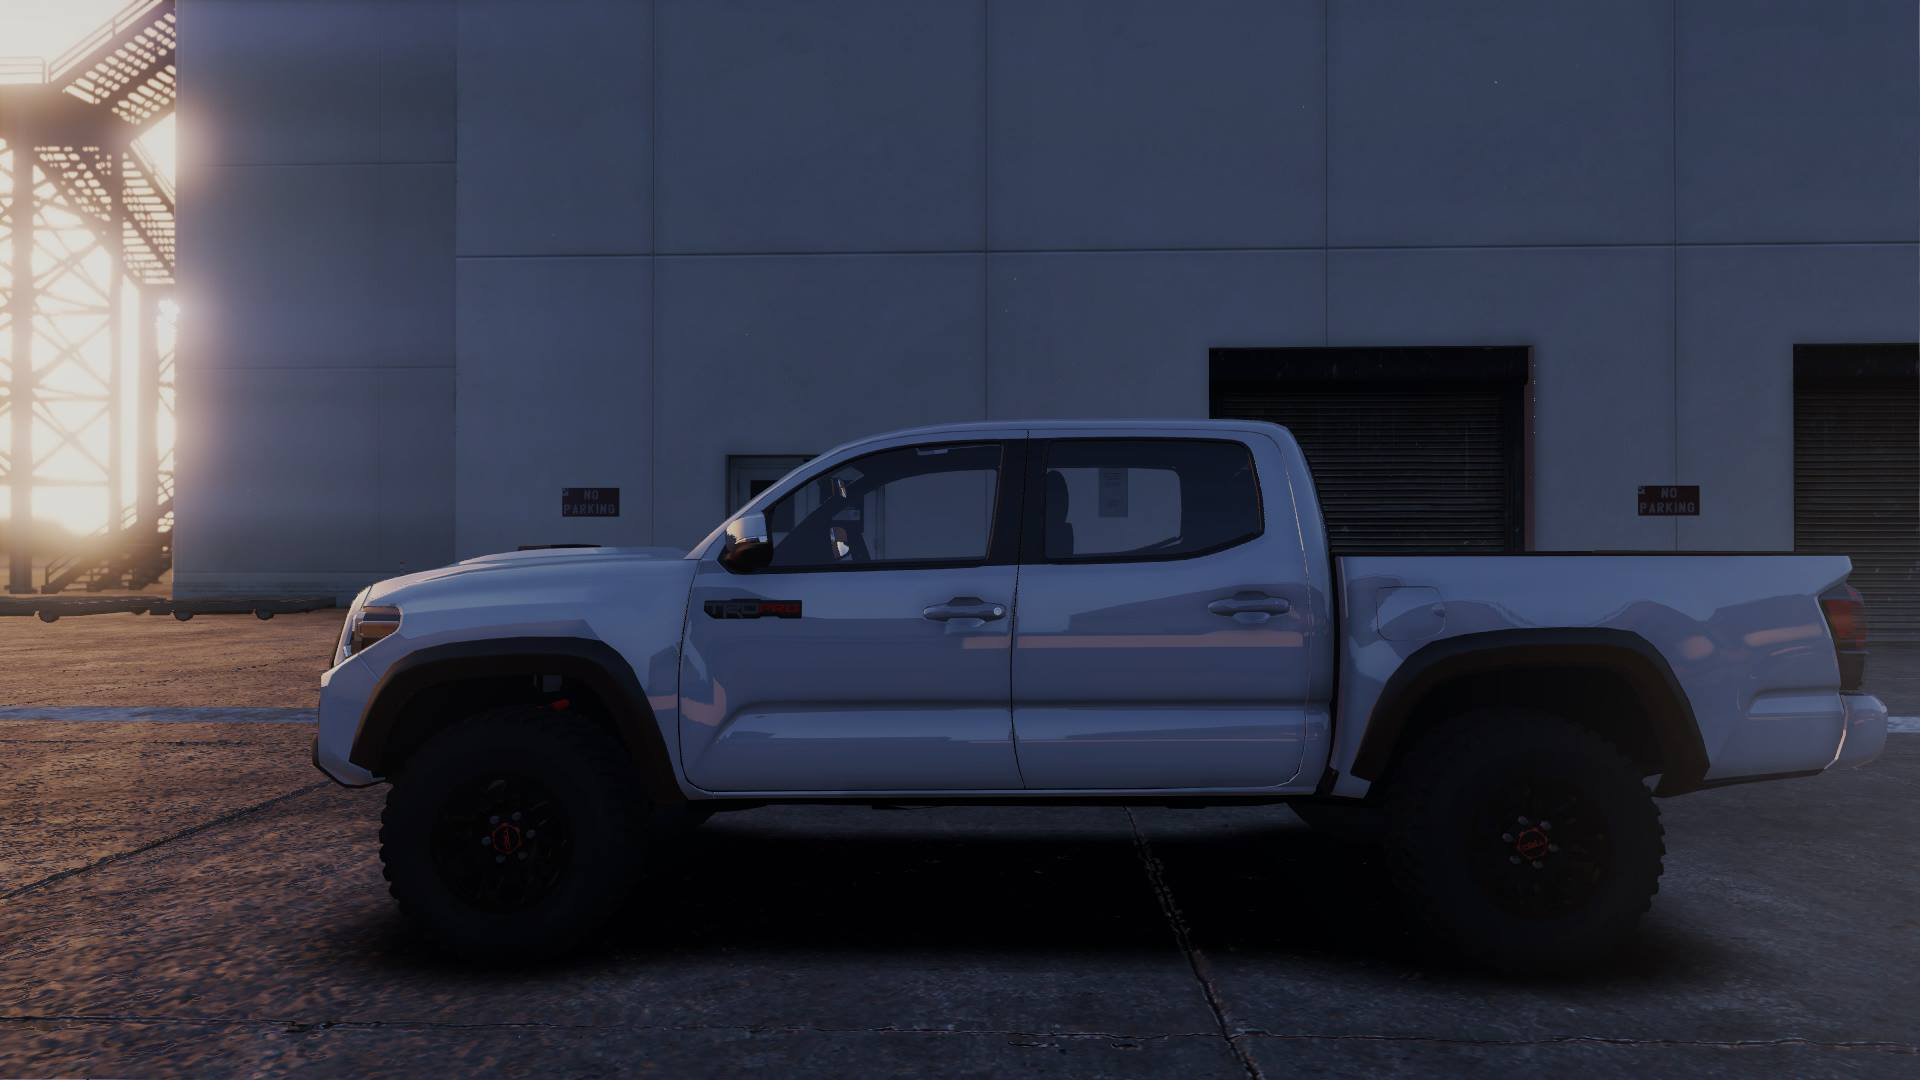 Toyota Tacoma Pro >> [VEHICLE] Toyota Tacoma TRD PRO 2016-2017 | GTA5-Mods.com Forums